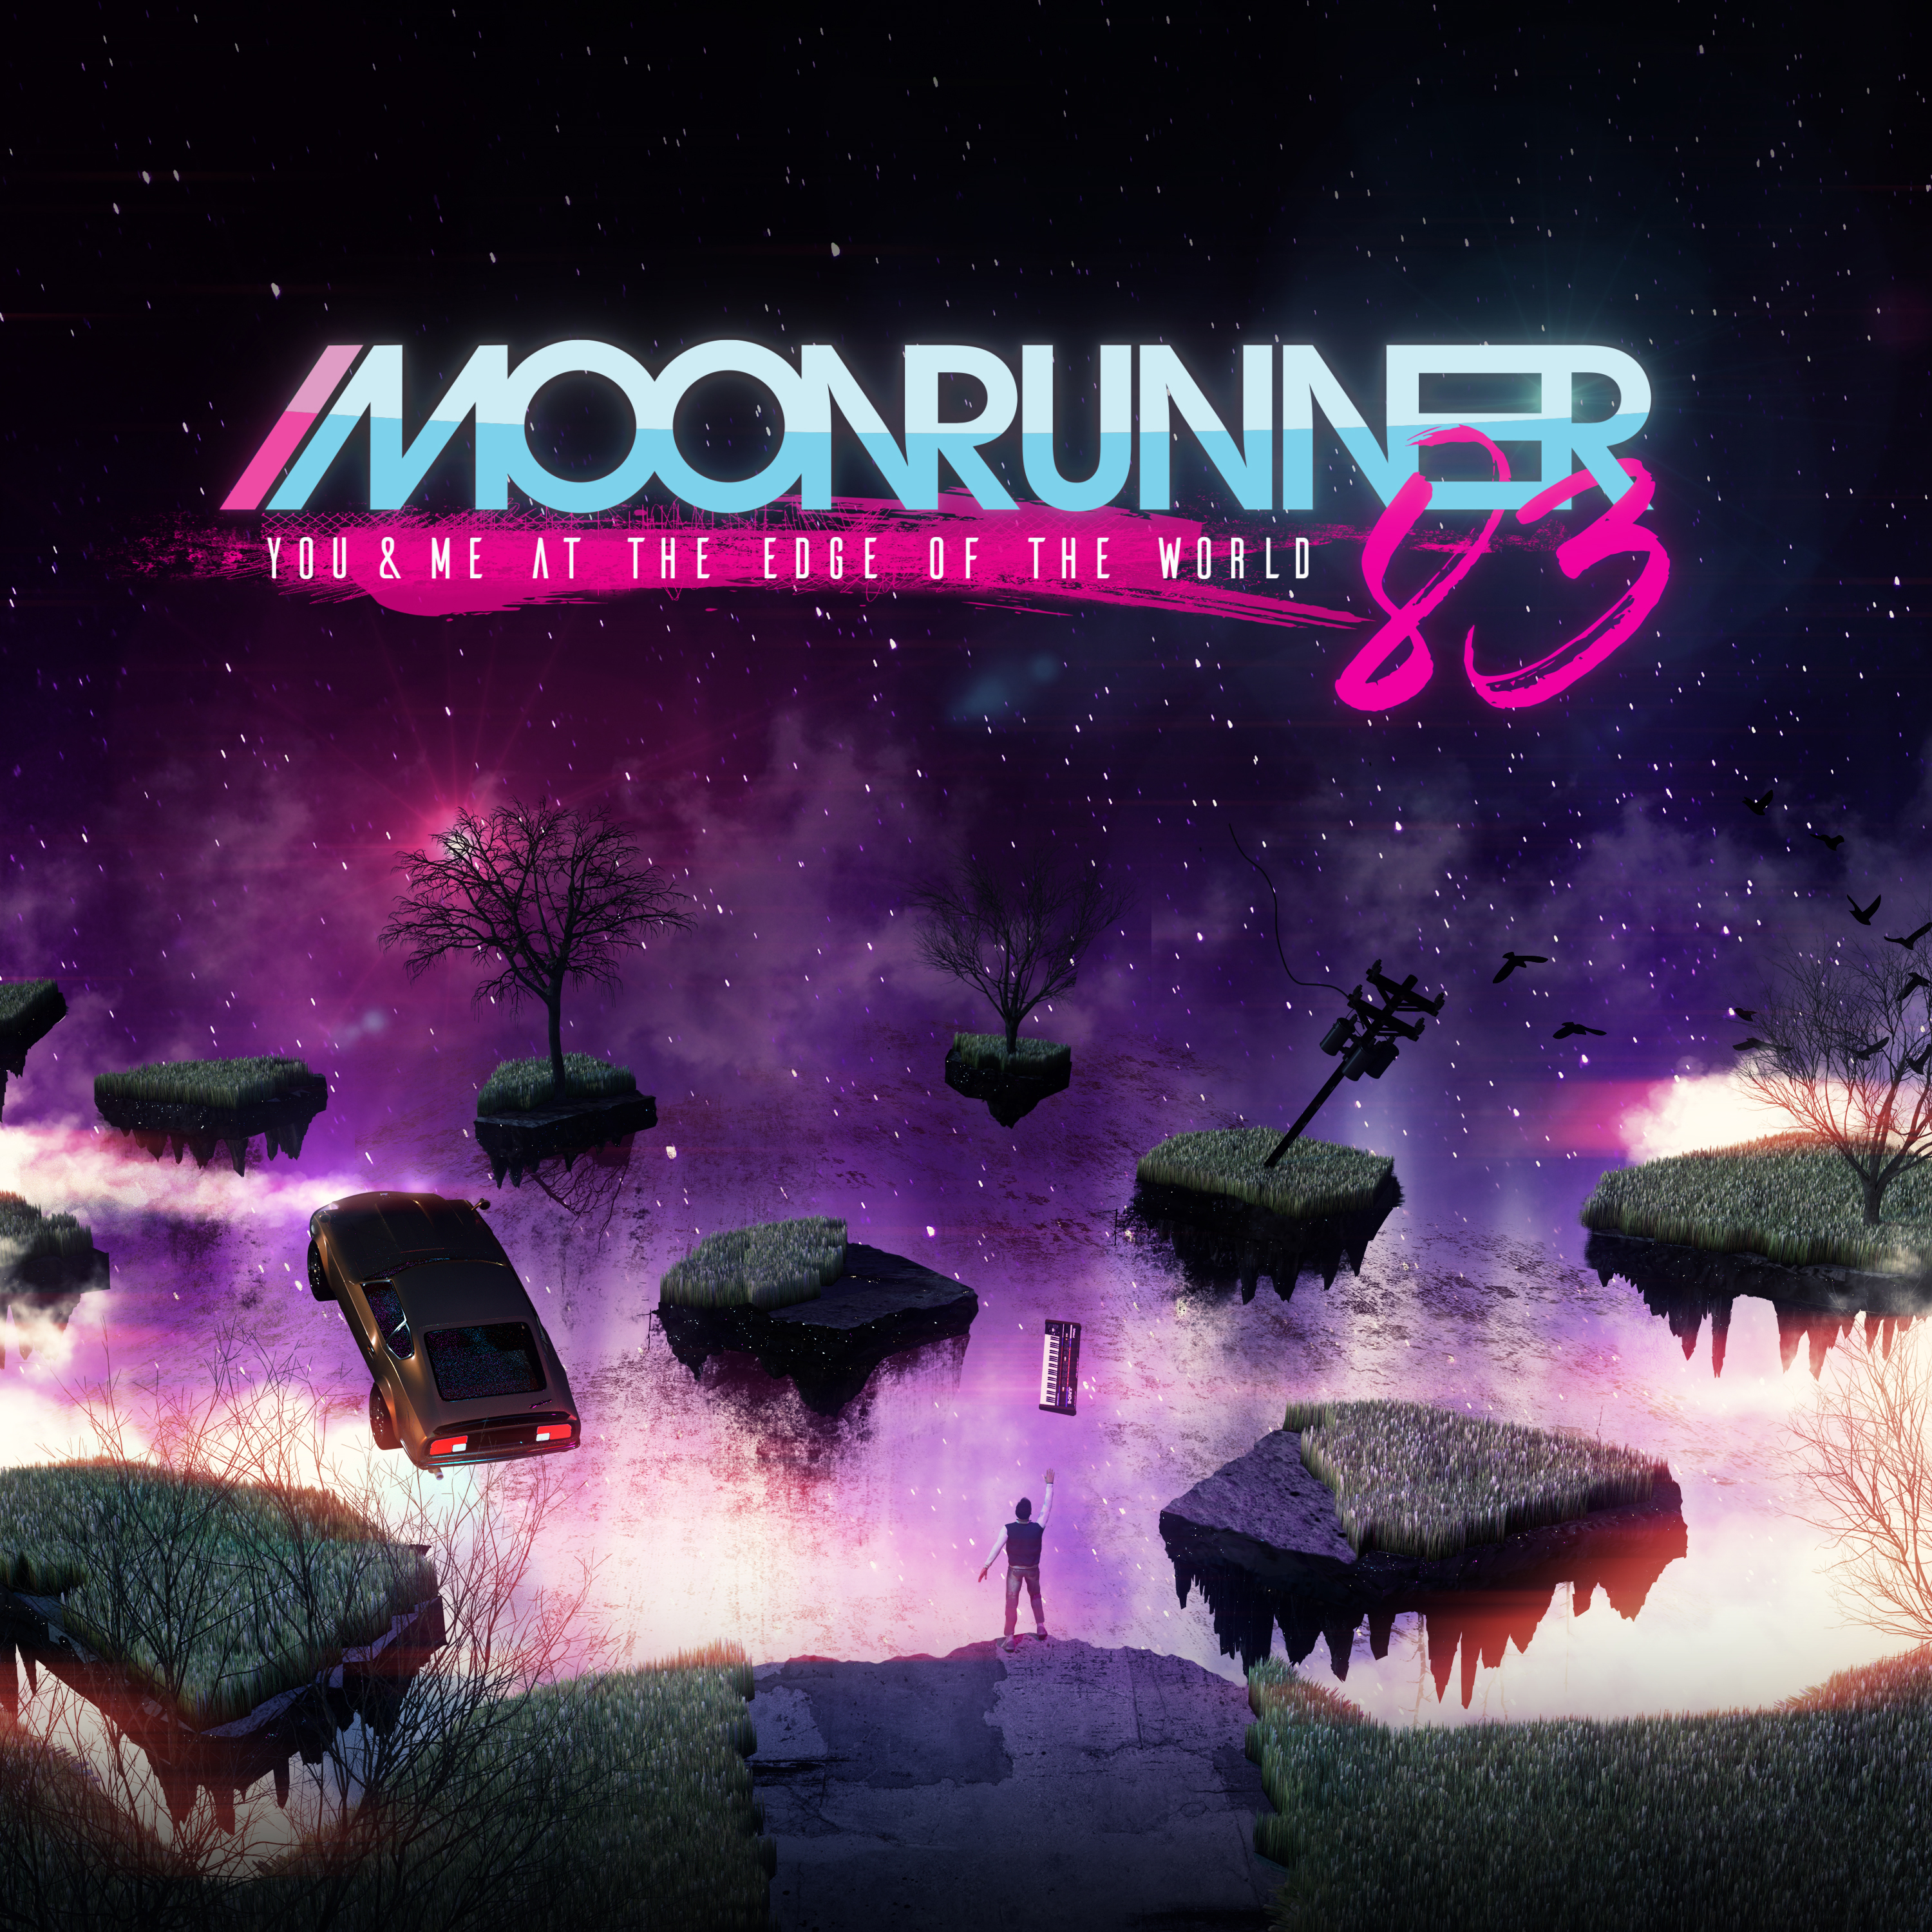 Moonrunner83 - You & Me At The Edge Of The World Image